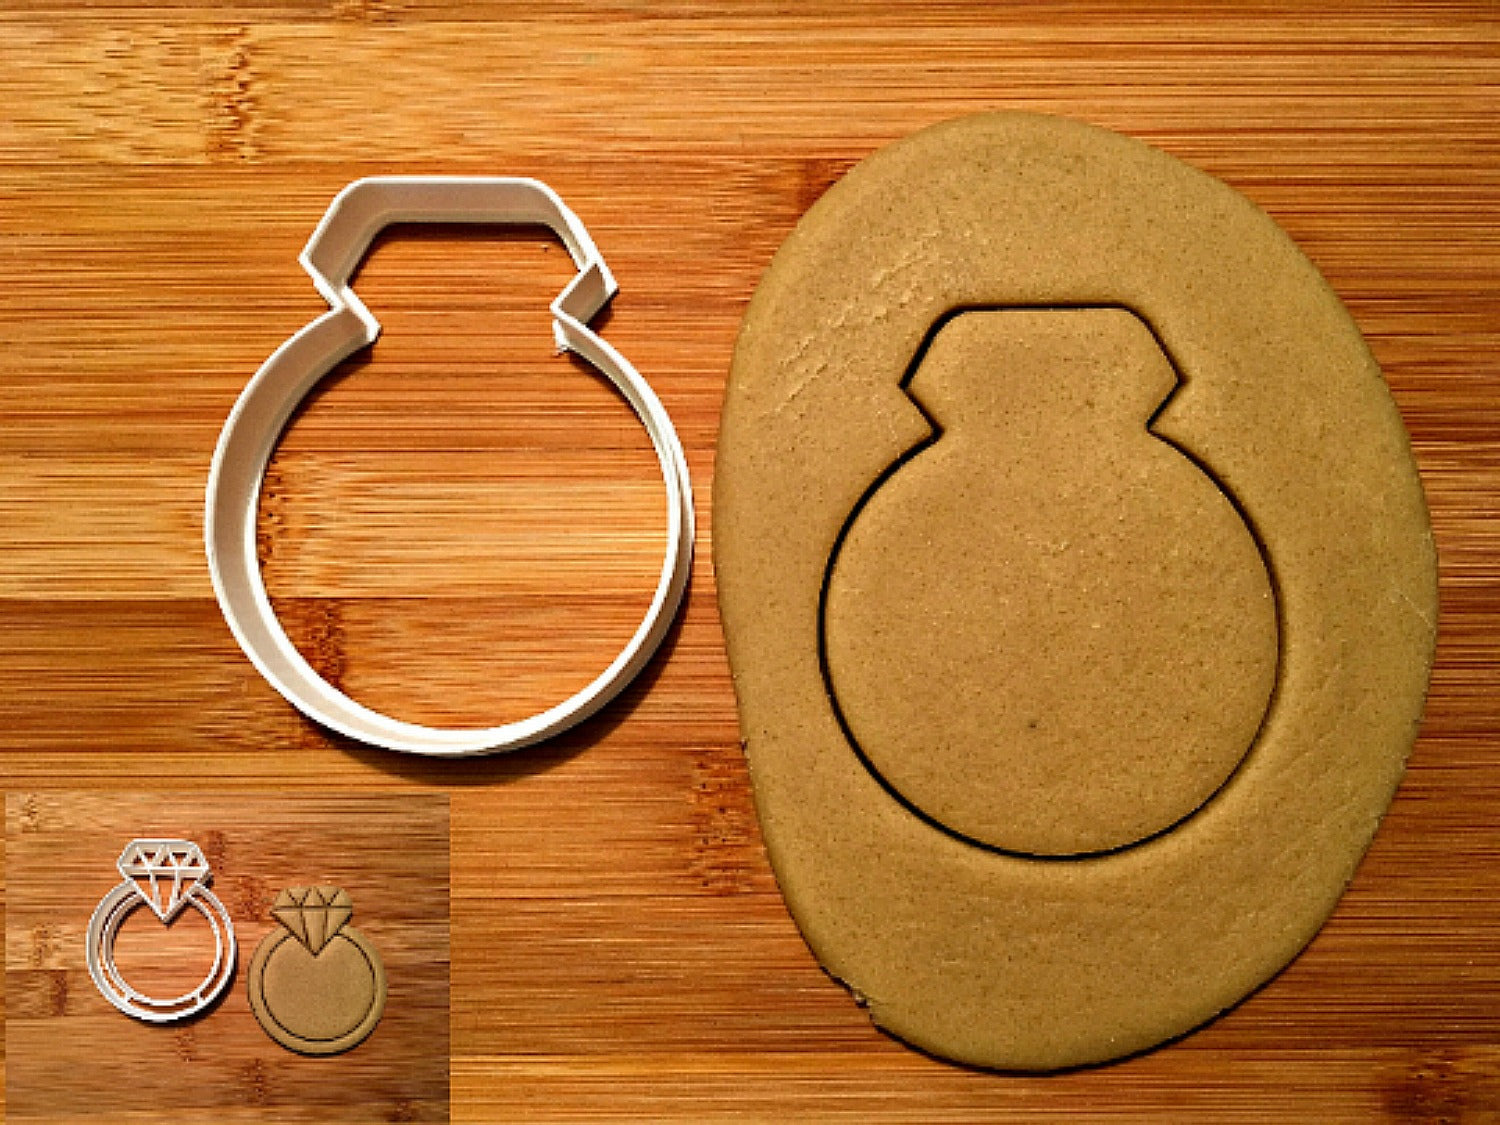 Diamond Ring Cookie Cutter/Dishwasher Safe